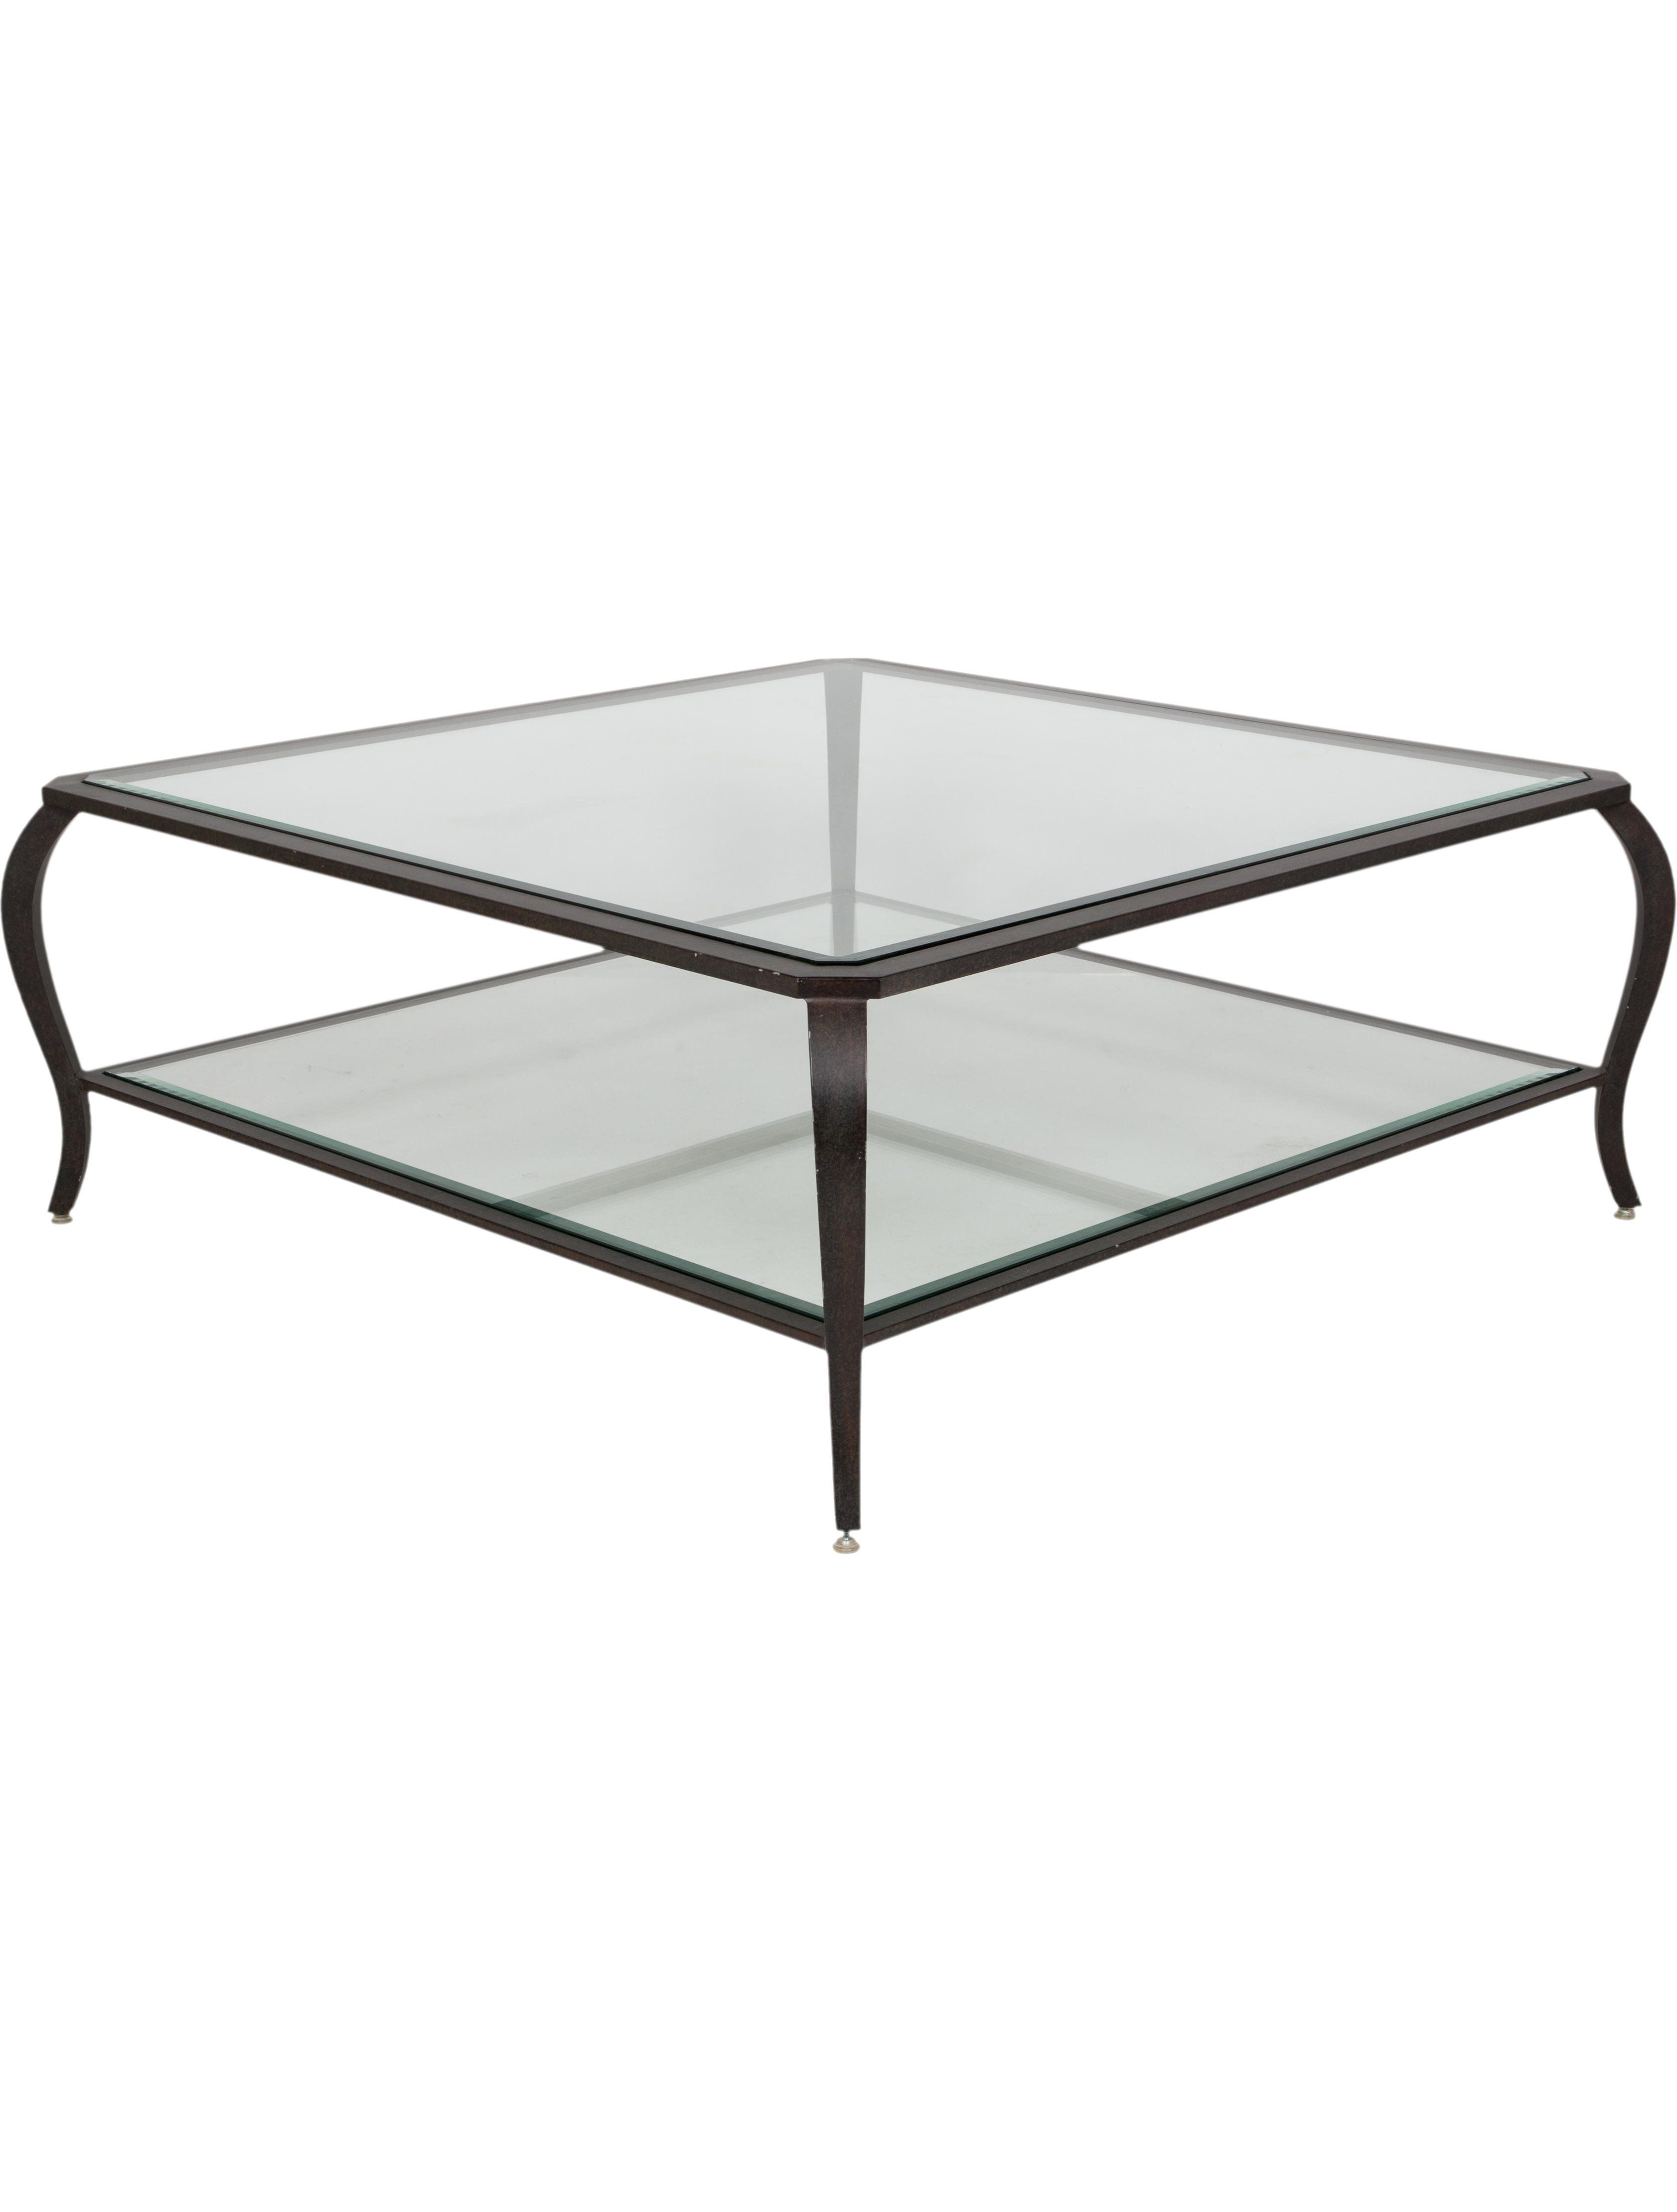 Tiered Glass Coffee Table Coffee Table Oversized Coffee Table